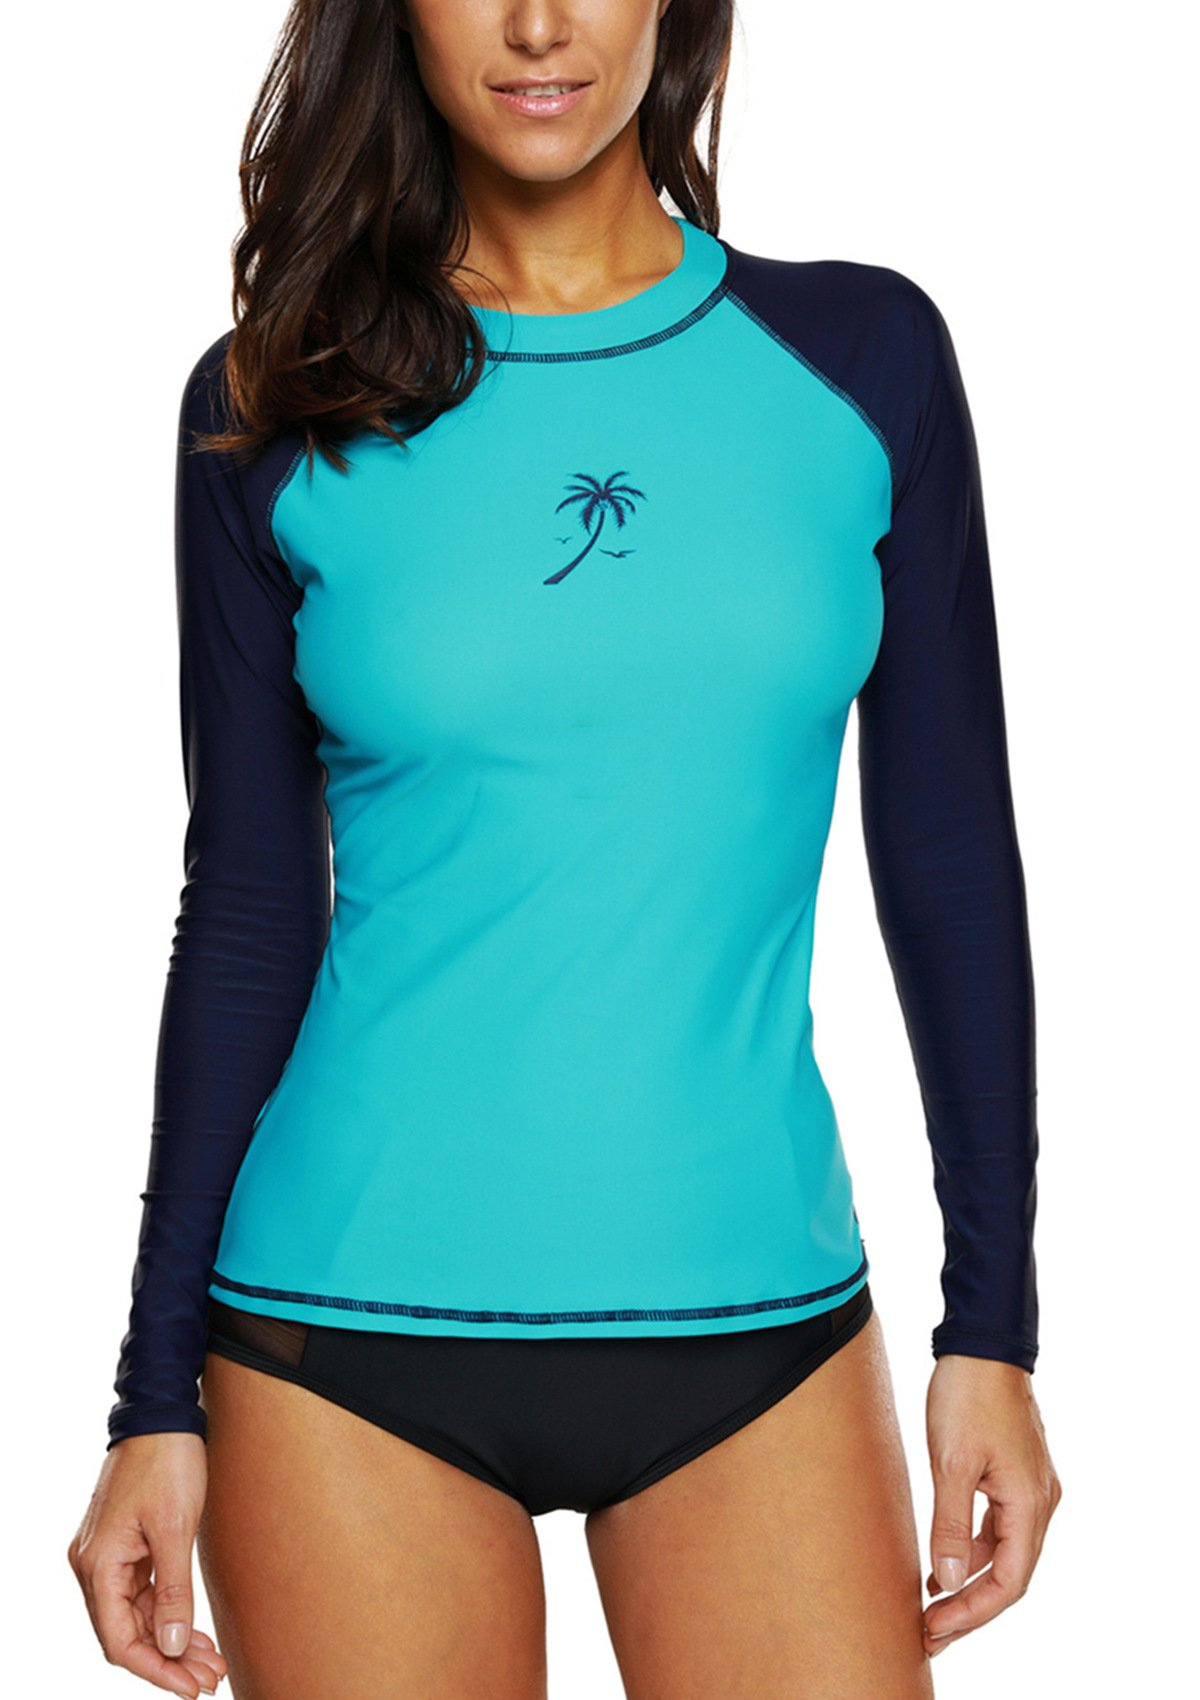 belamo Womens Long Sleeve Athletic Tops Sun Protection Rash Guard Swimsuit